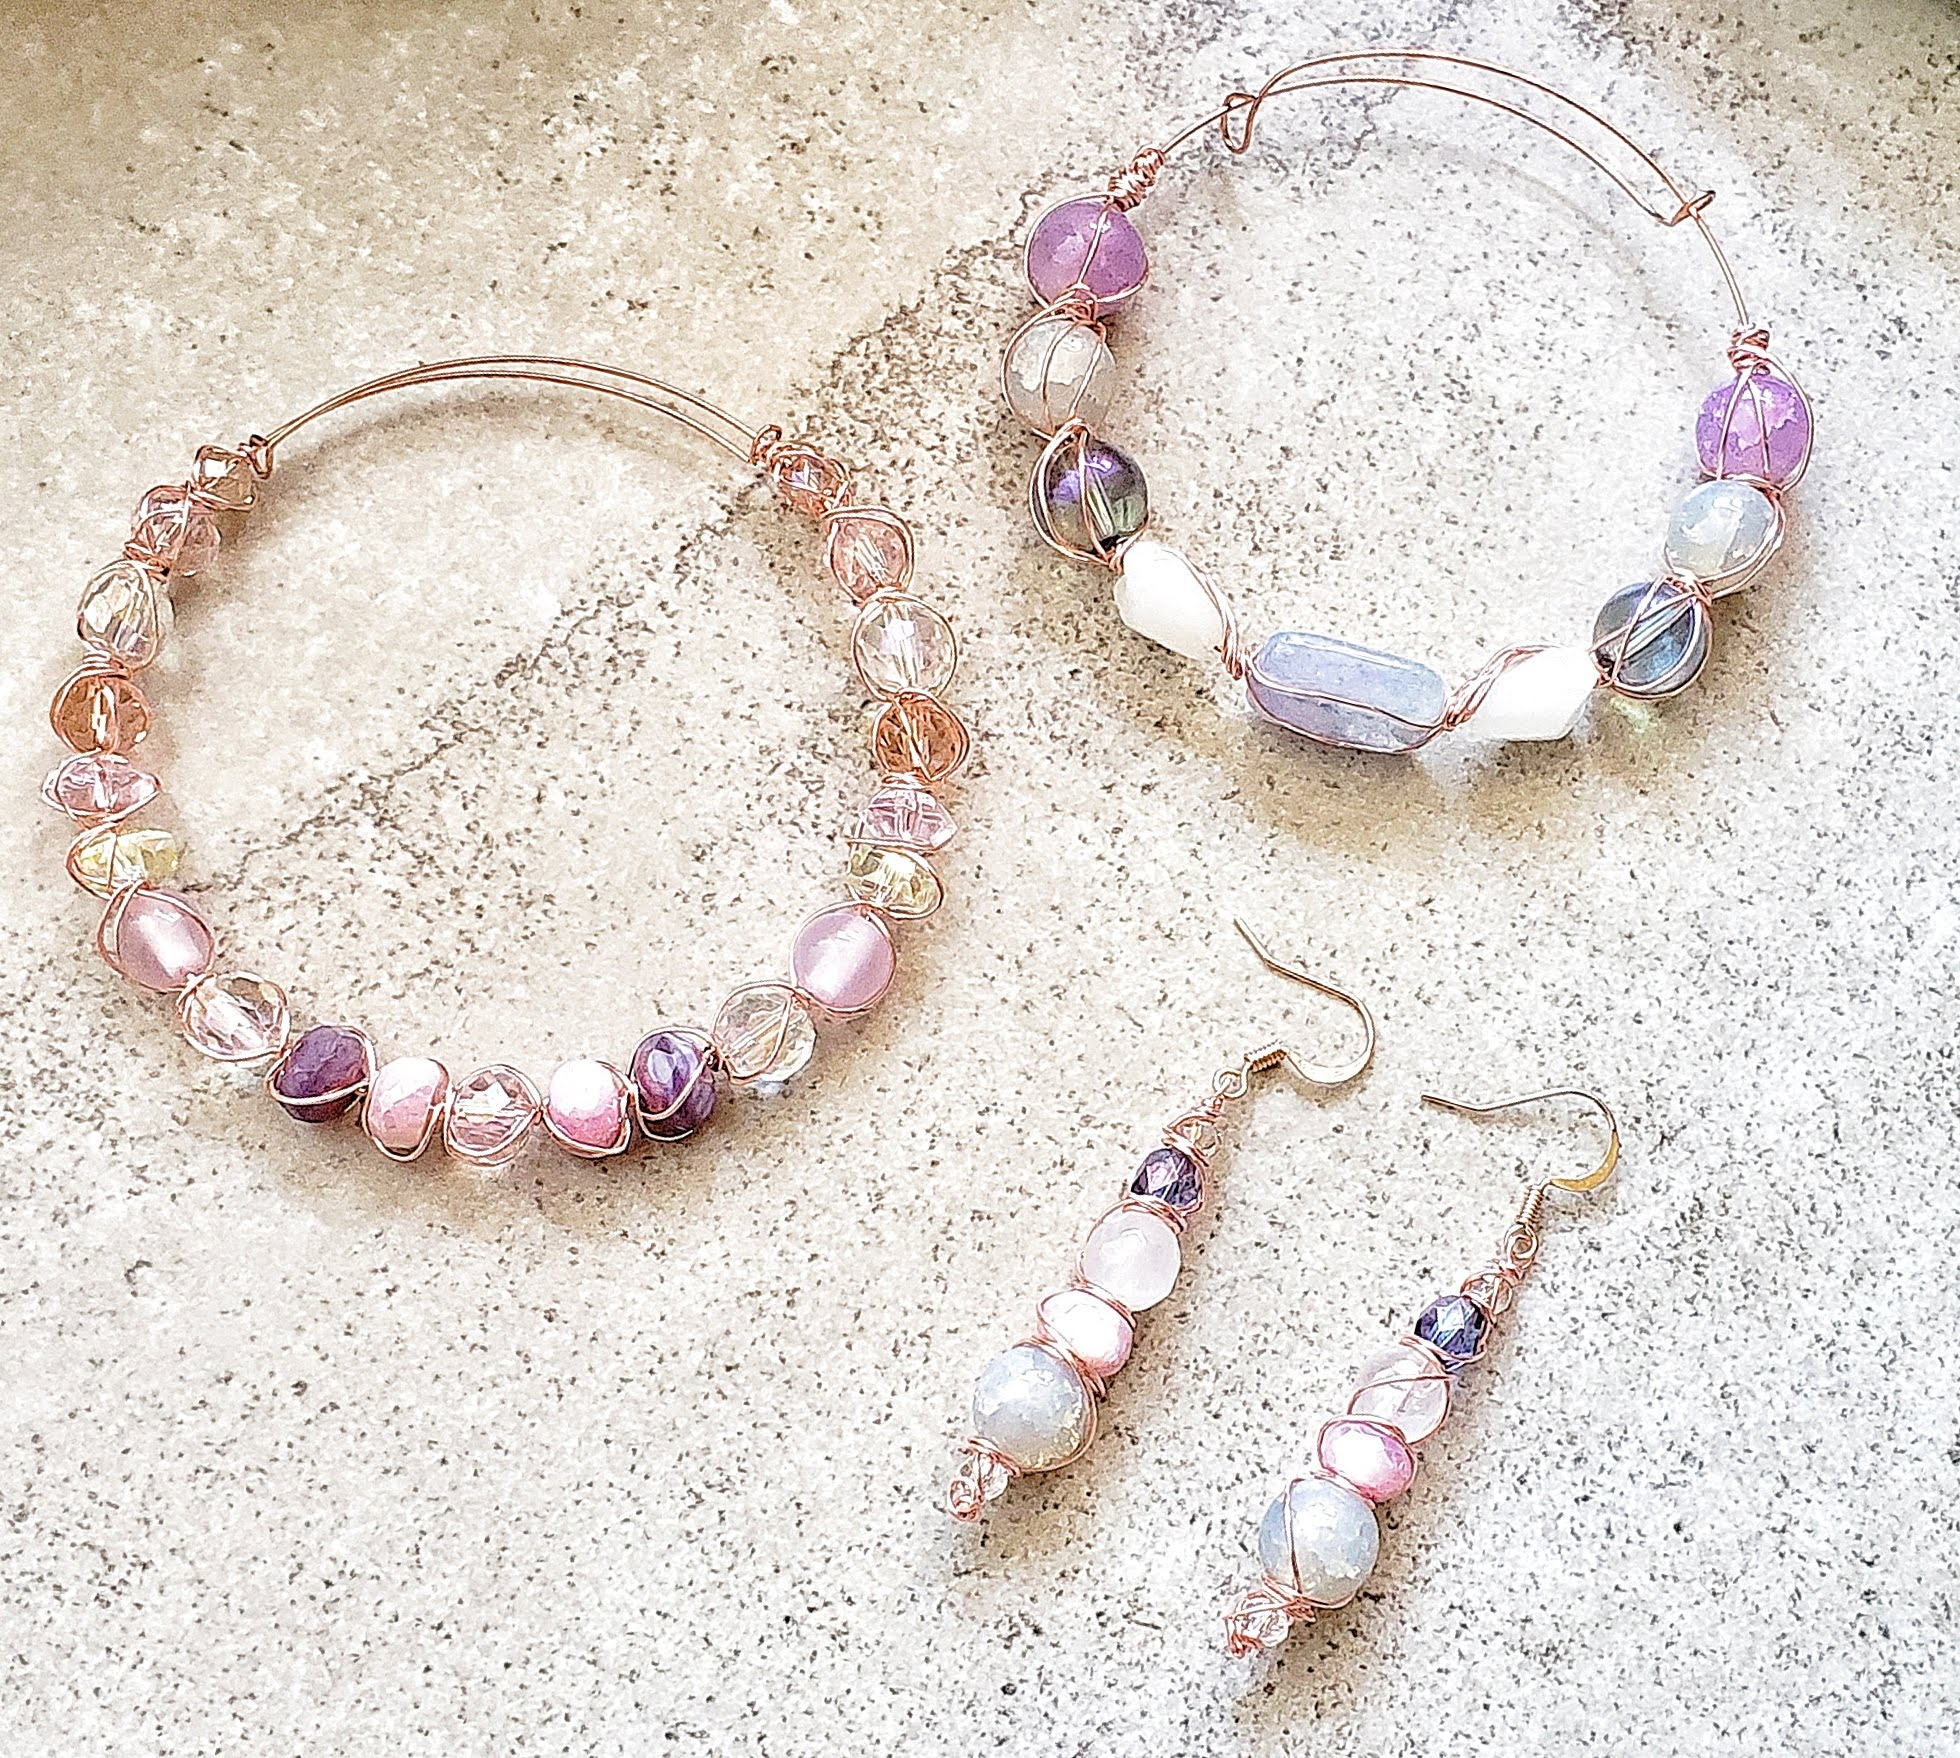 Making Jewelry - How I'm Keeping My Creative Juices Flowing